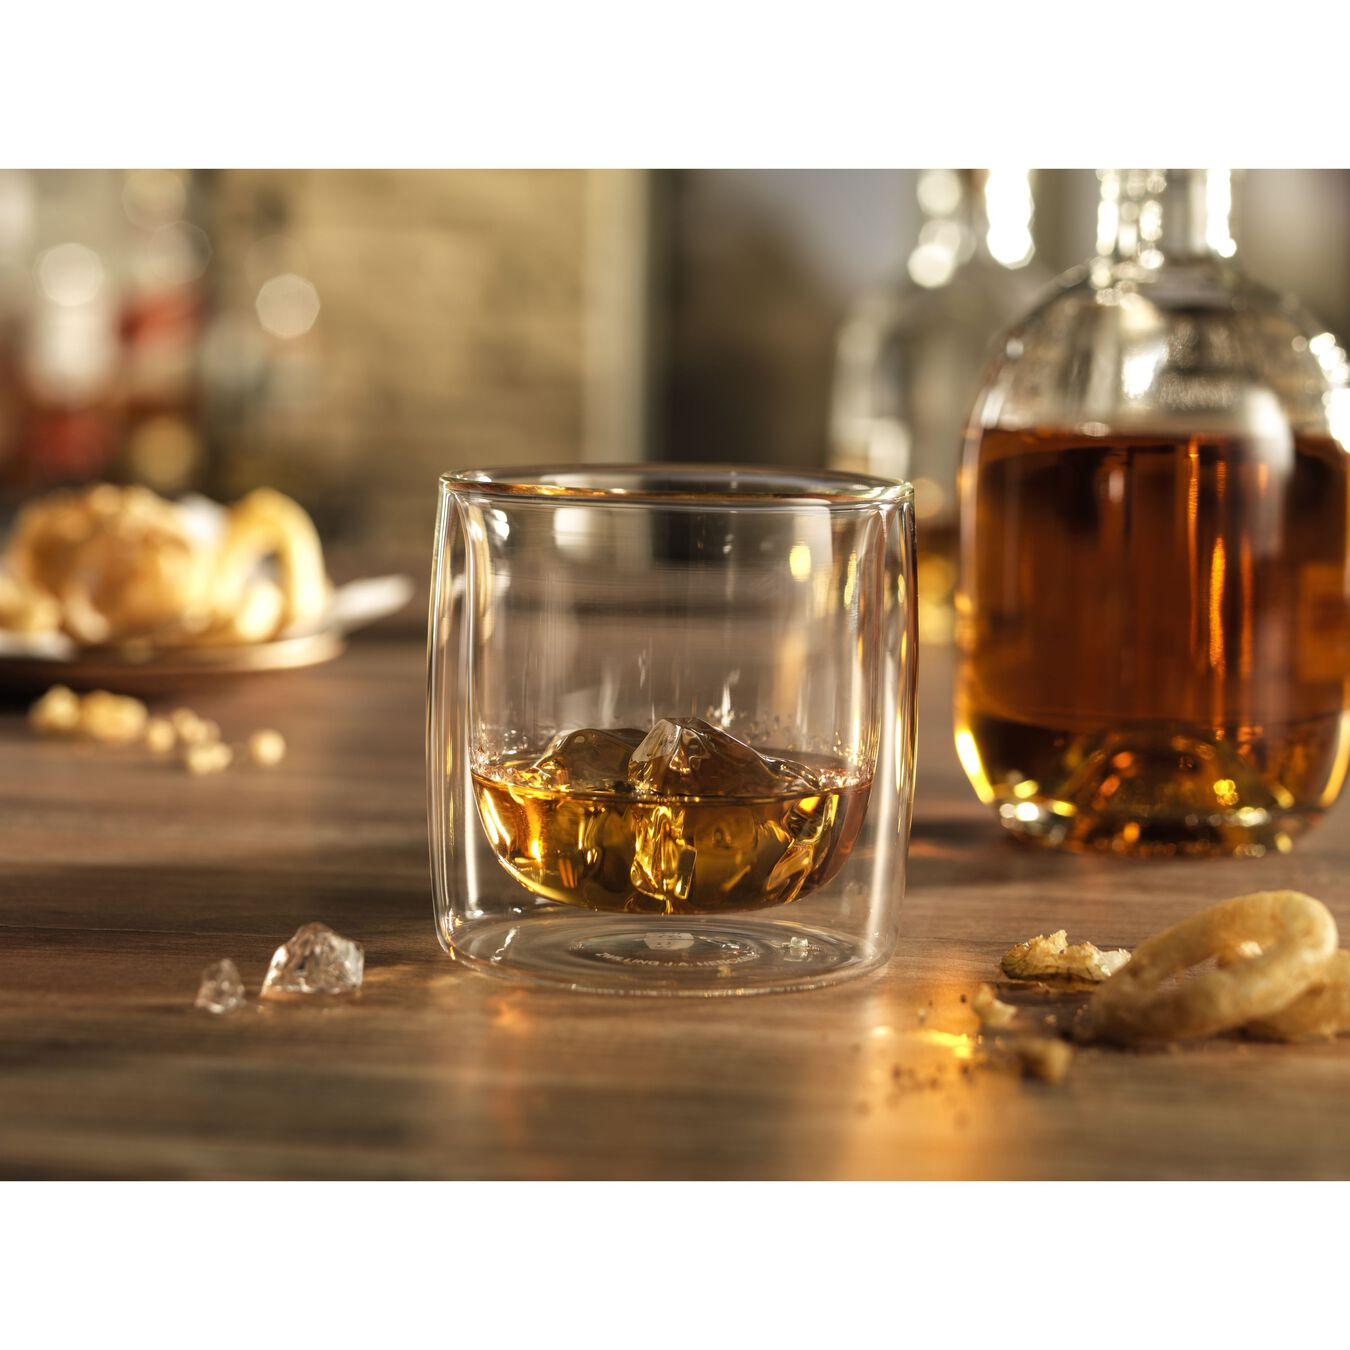 2-pc Whisky glass set, Double wall glas ,,large 3